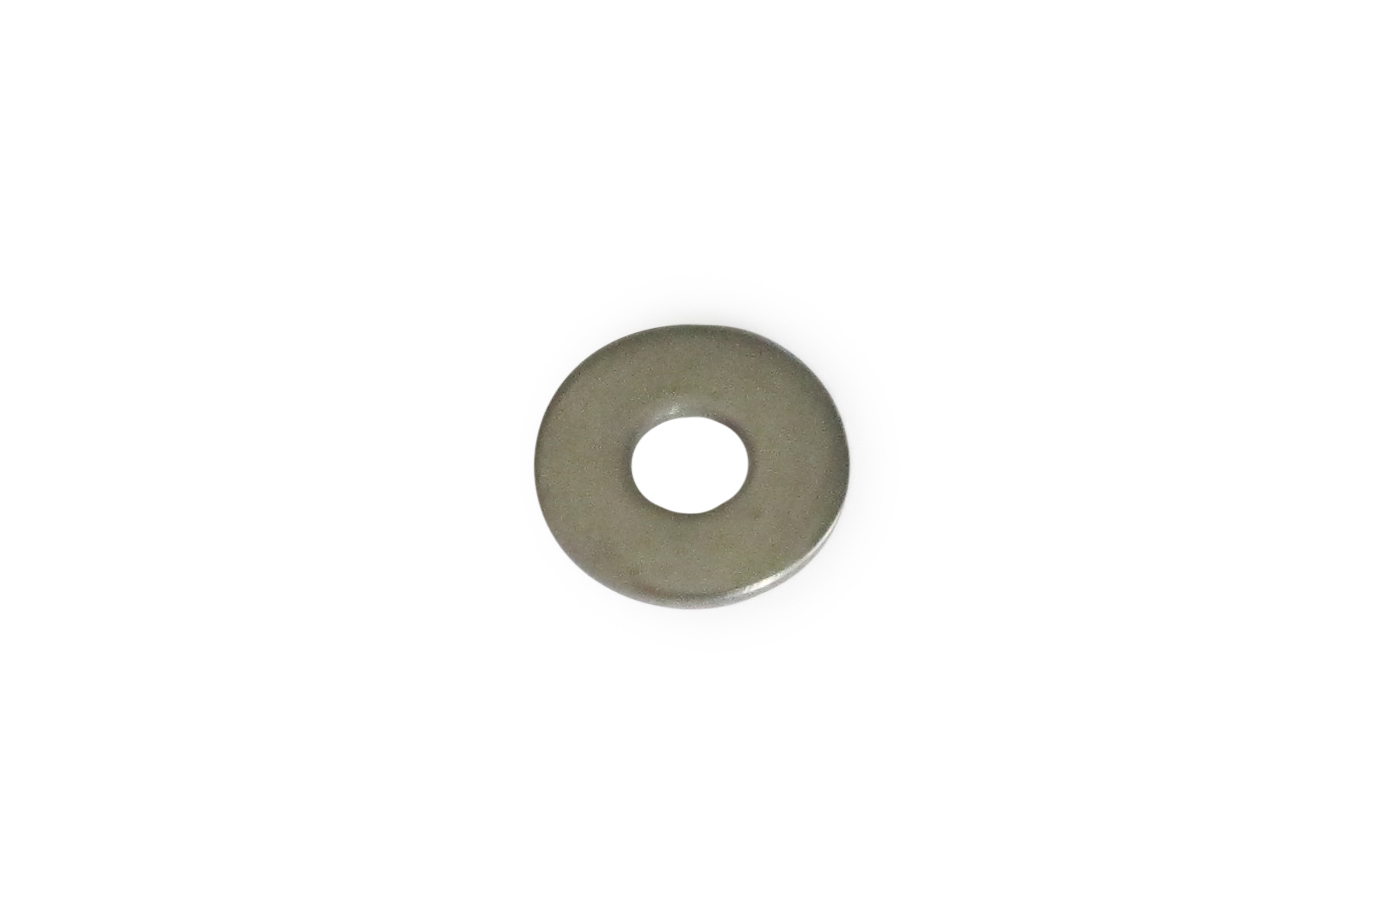 M5 Large Flat Washer